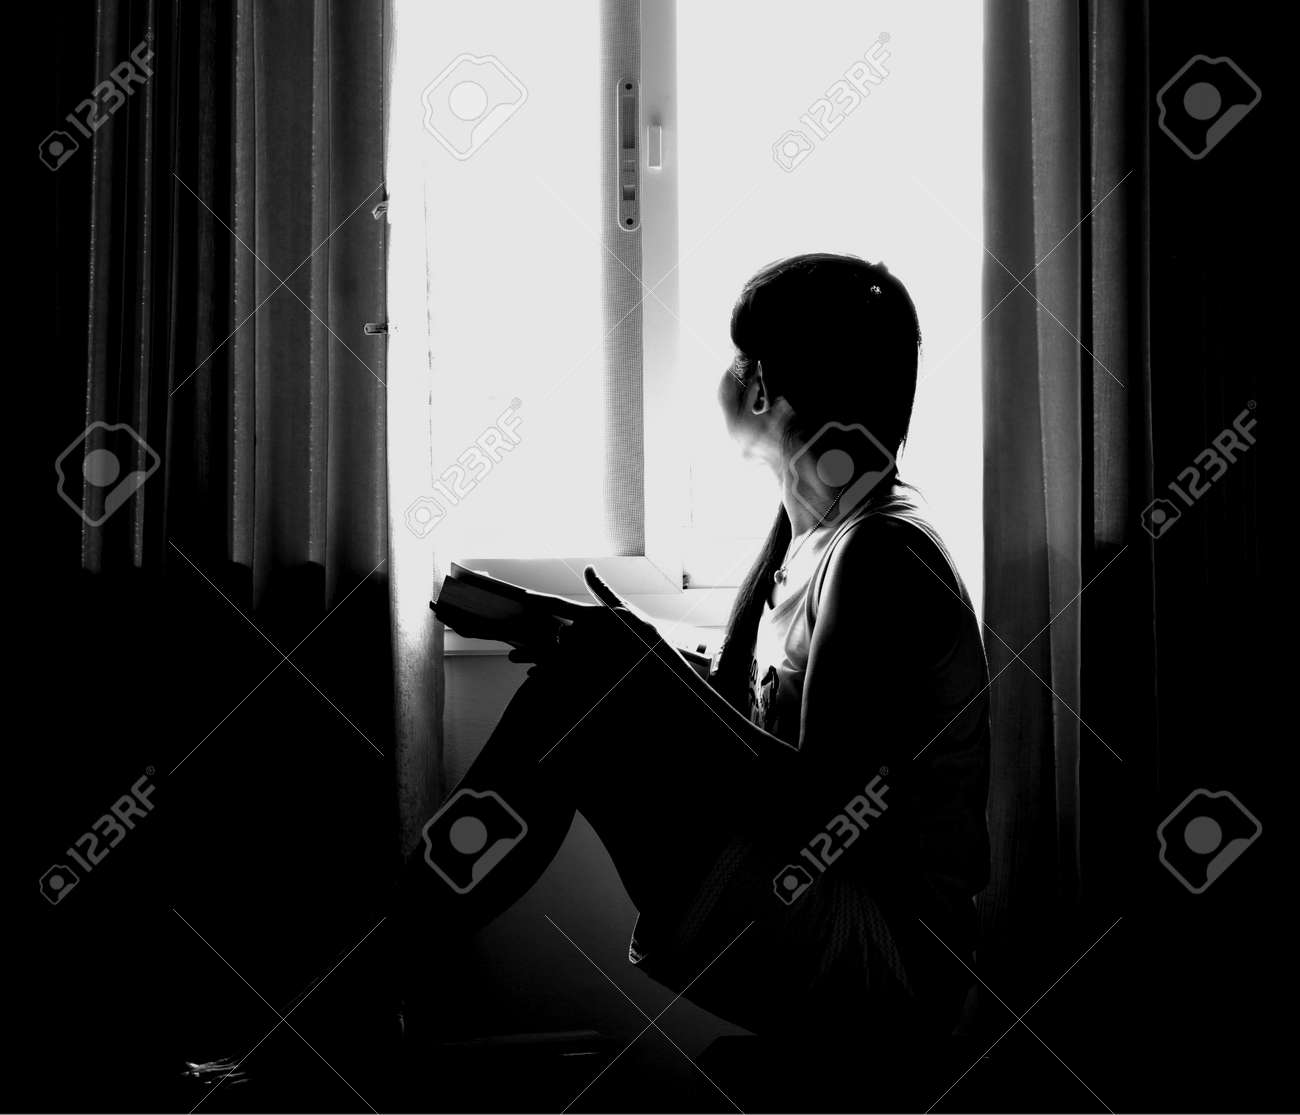 The silhouette of stressed and depressed woman worried about her studies in black and white. processed in low key light - 125949314